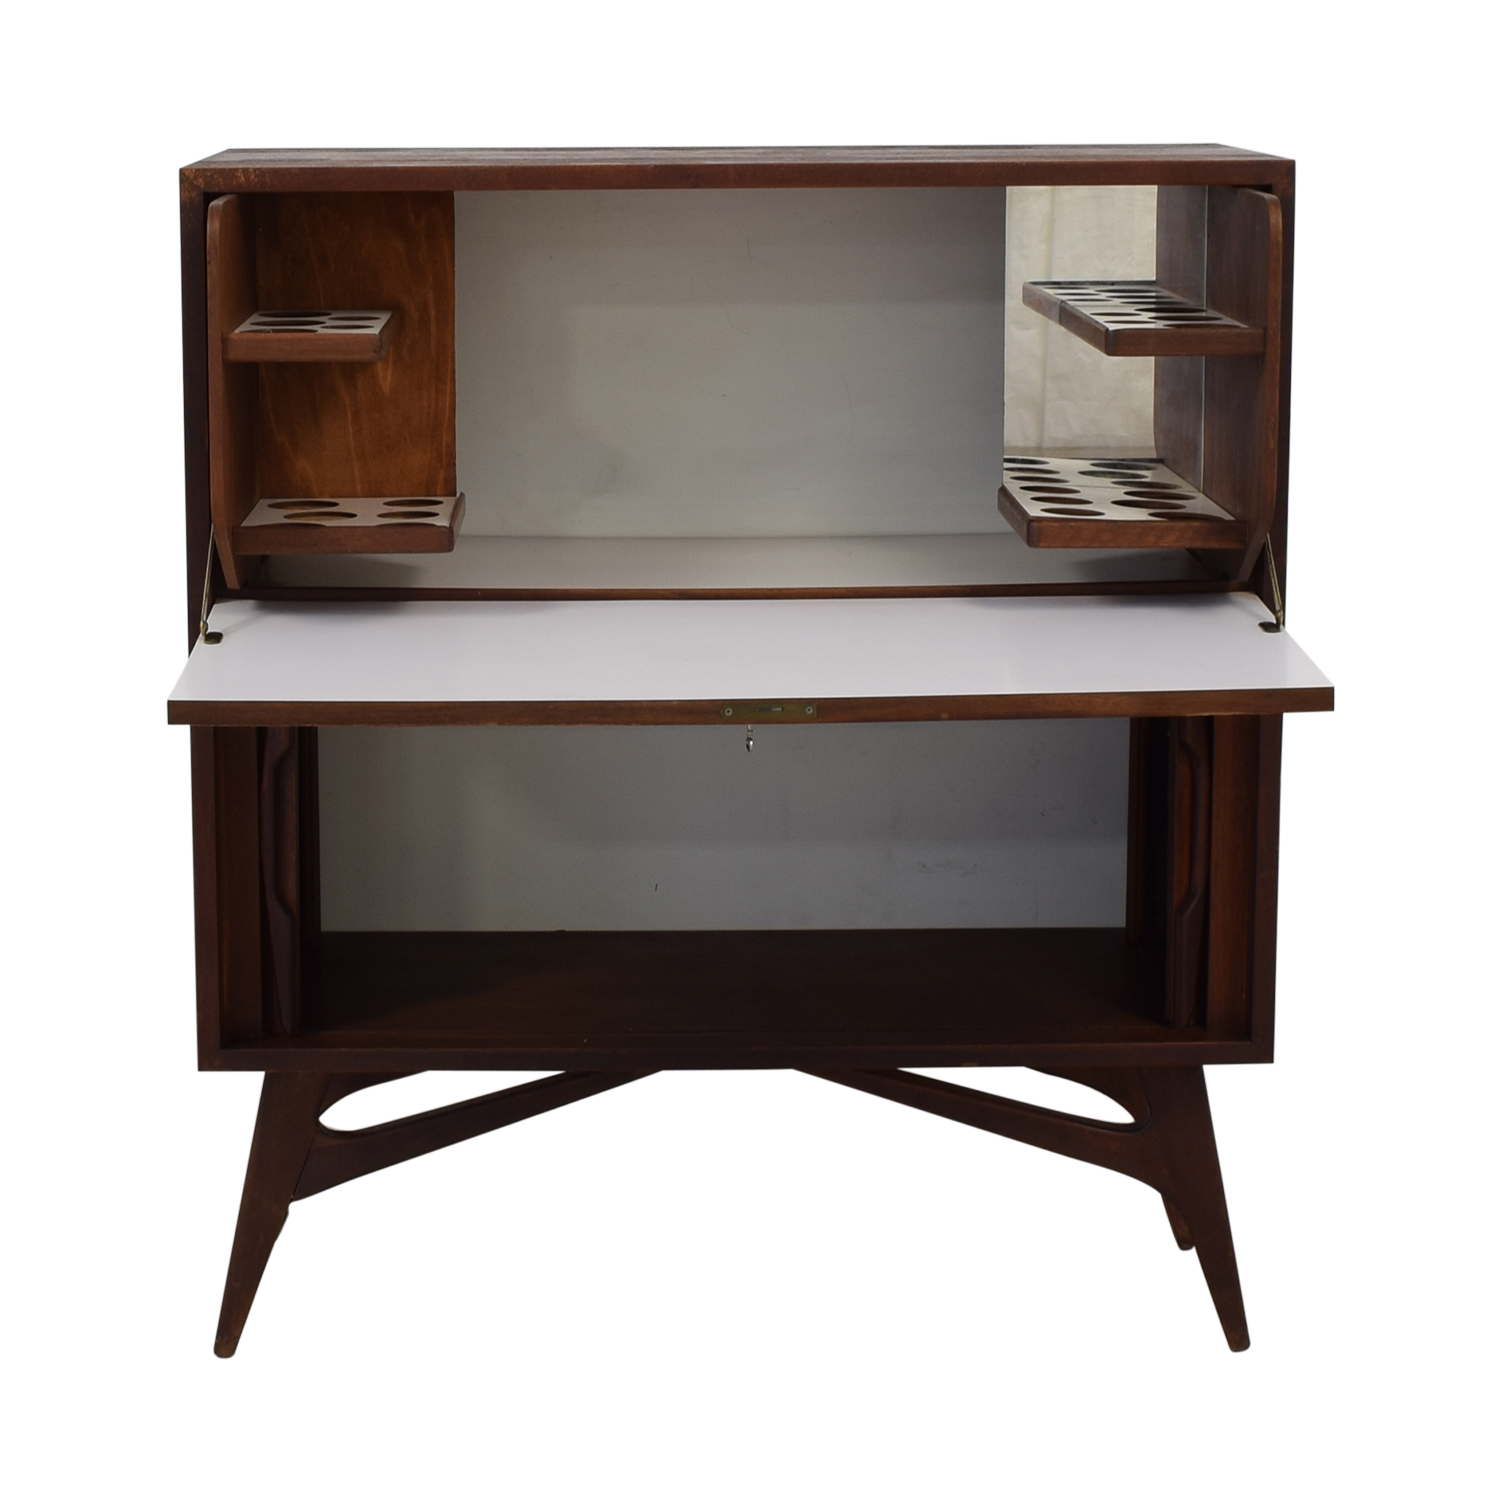 65 Off Mid Century Modern Secretary Tables